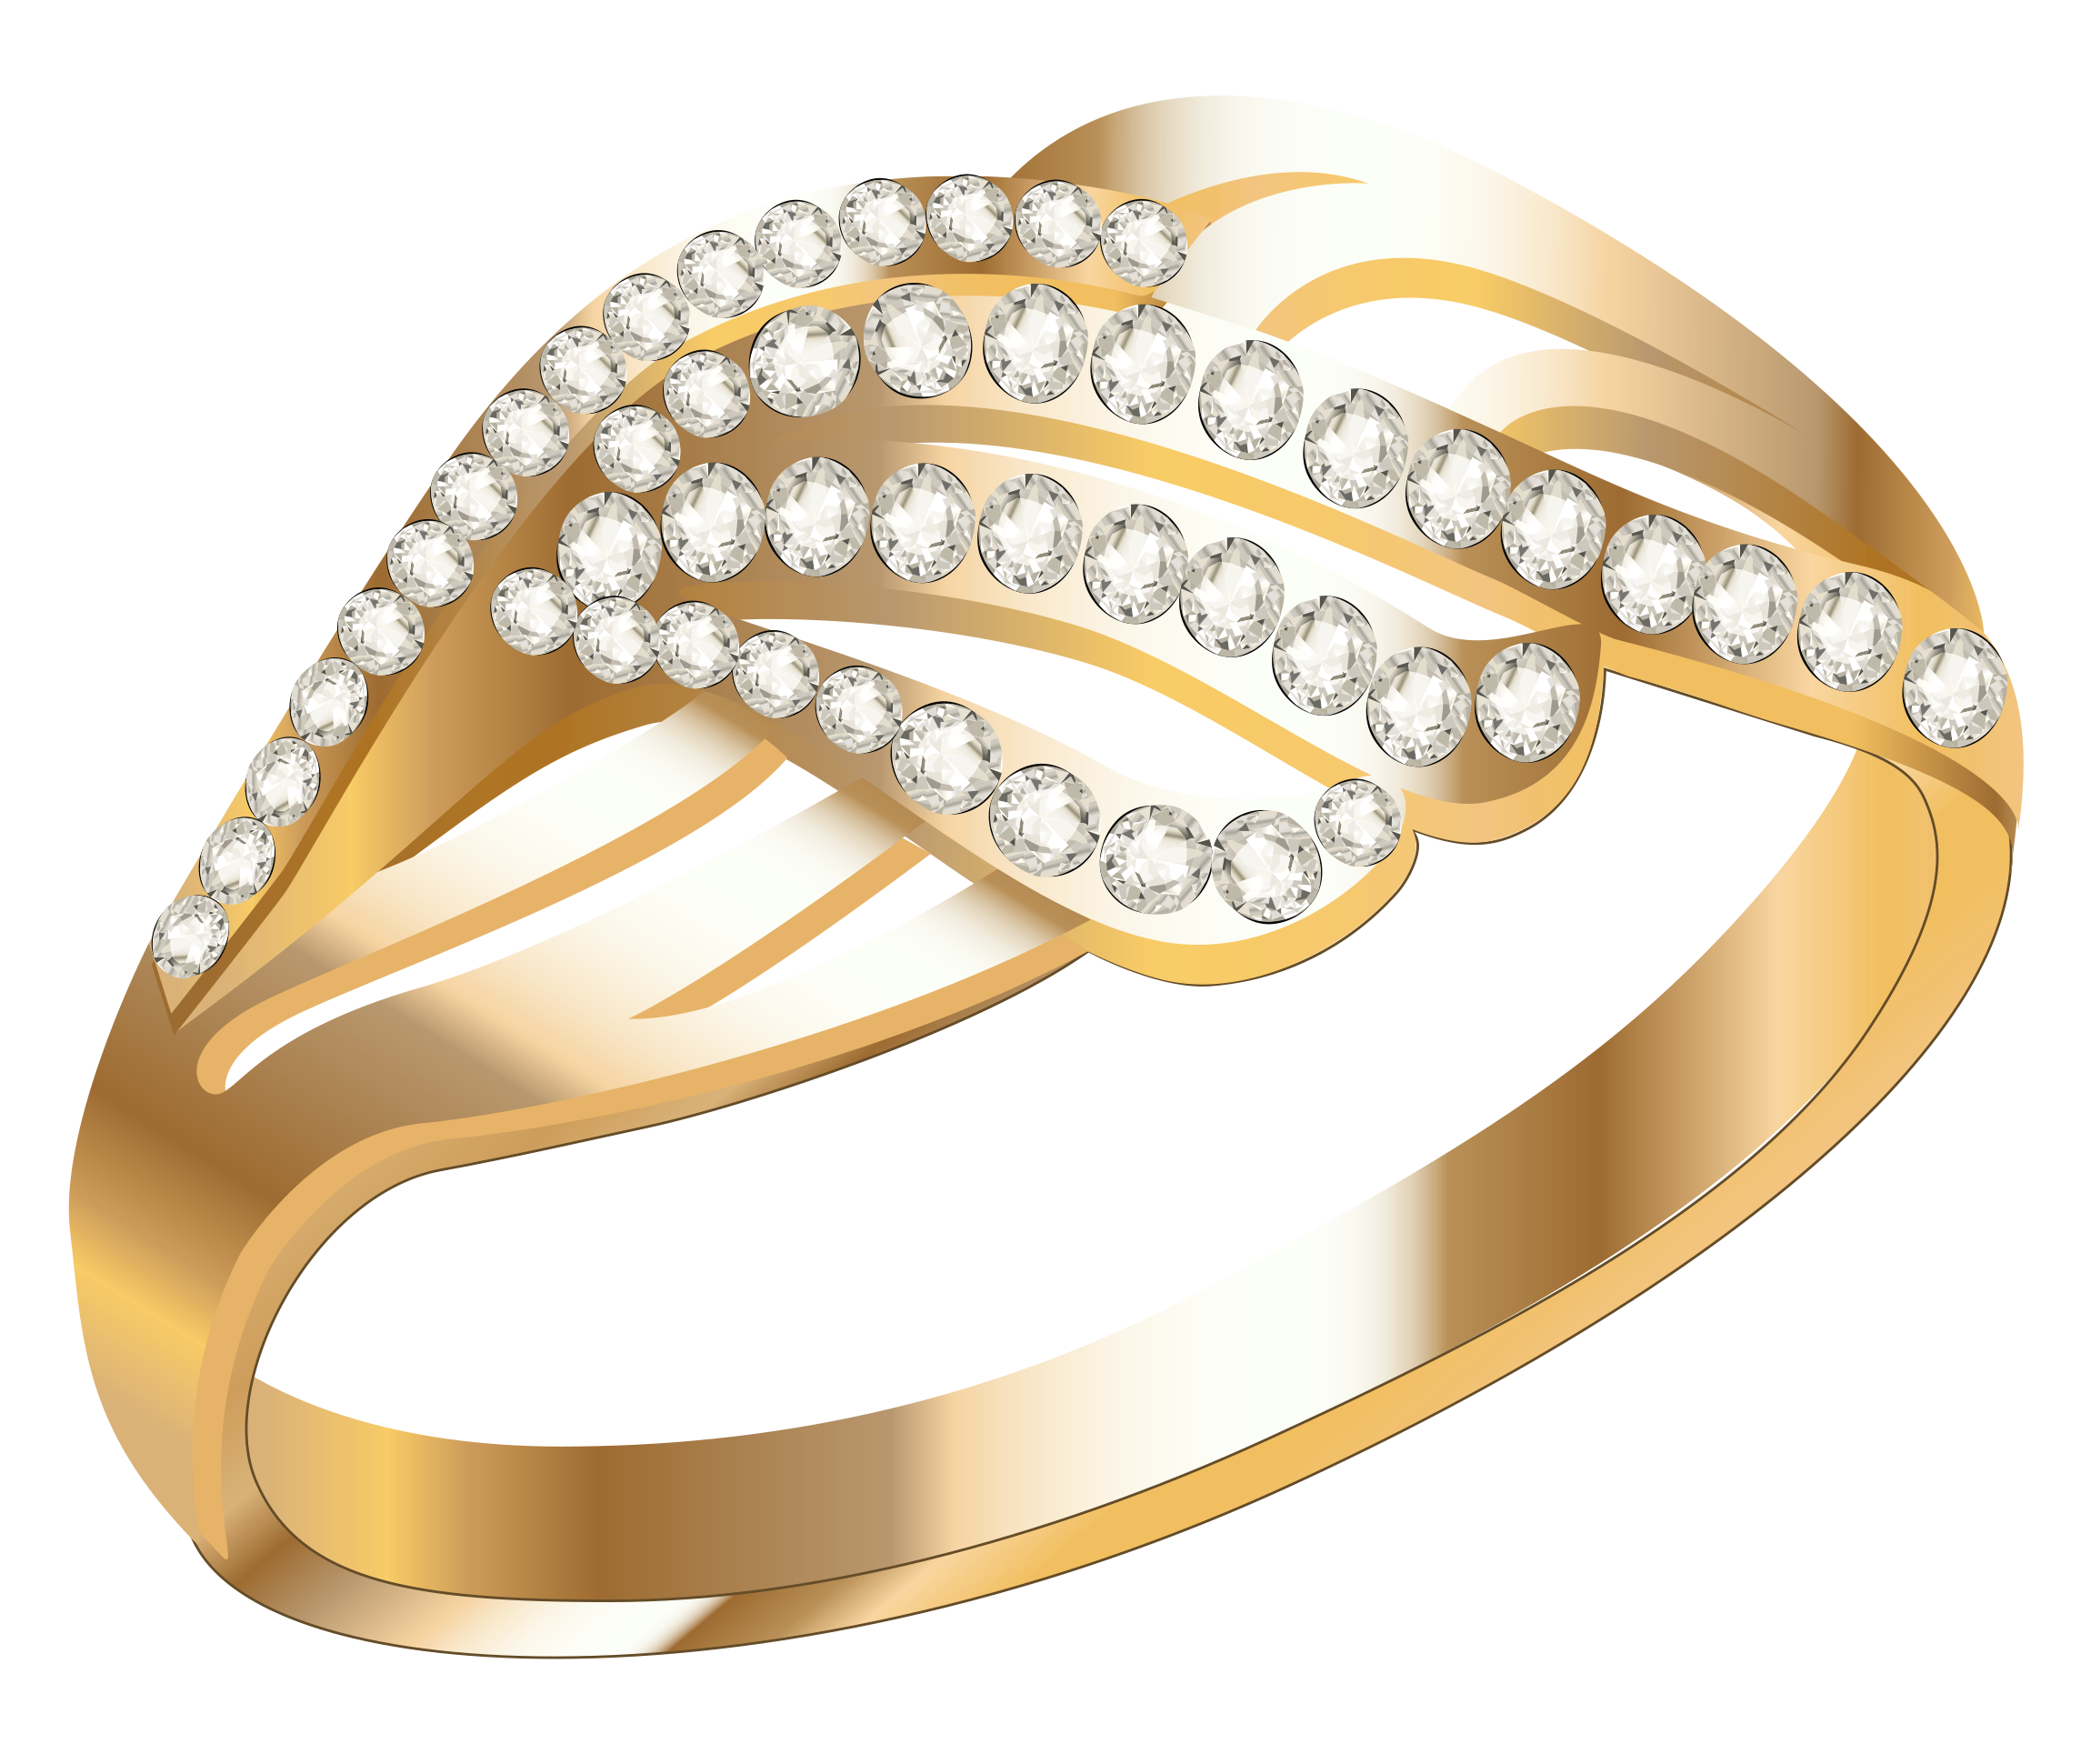 Ring clipart gold necklace #13